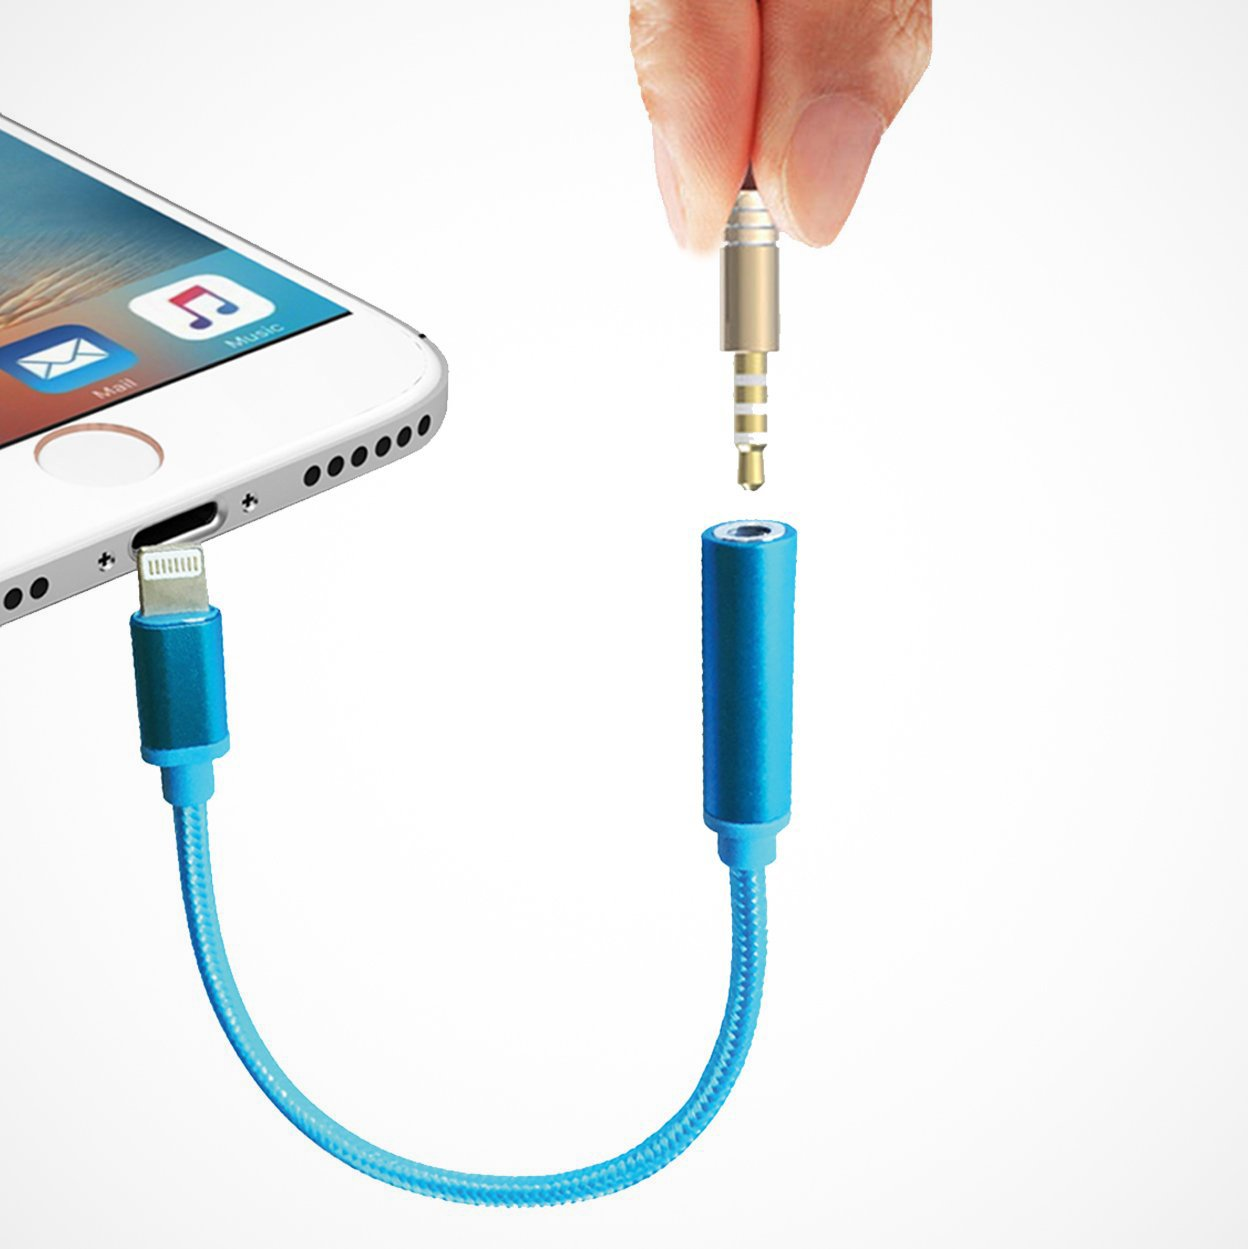 Lightning to 3.5mm Headphone Jack Adapter Cable